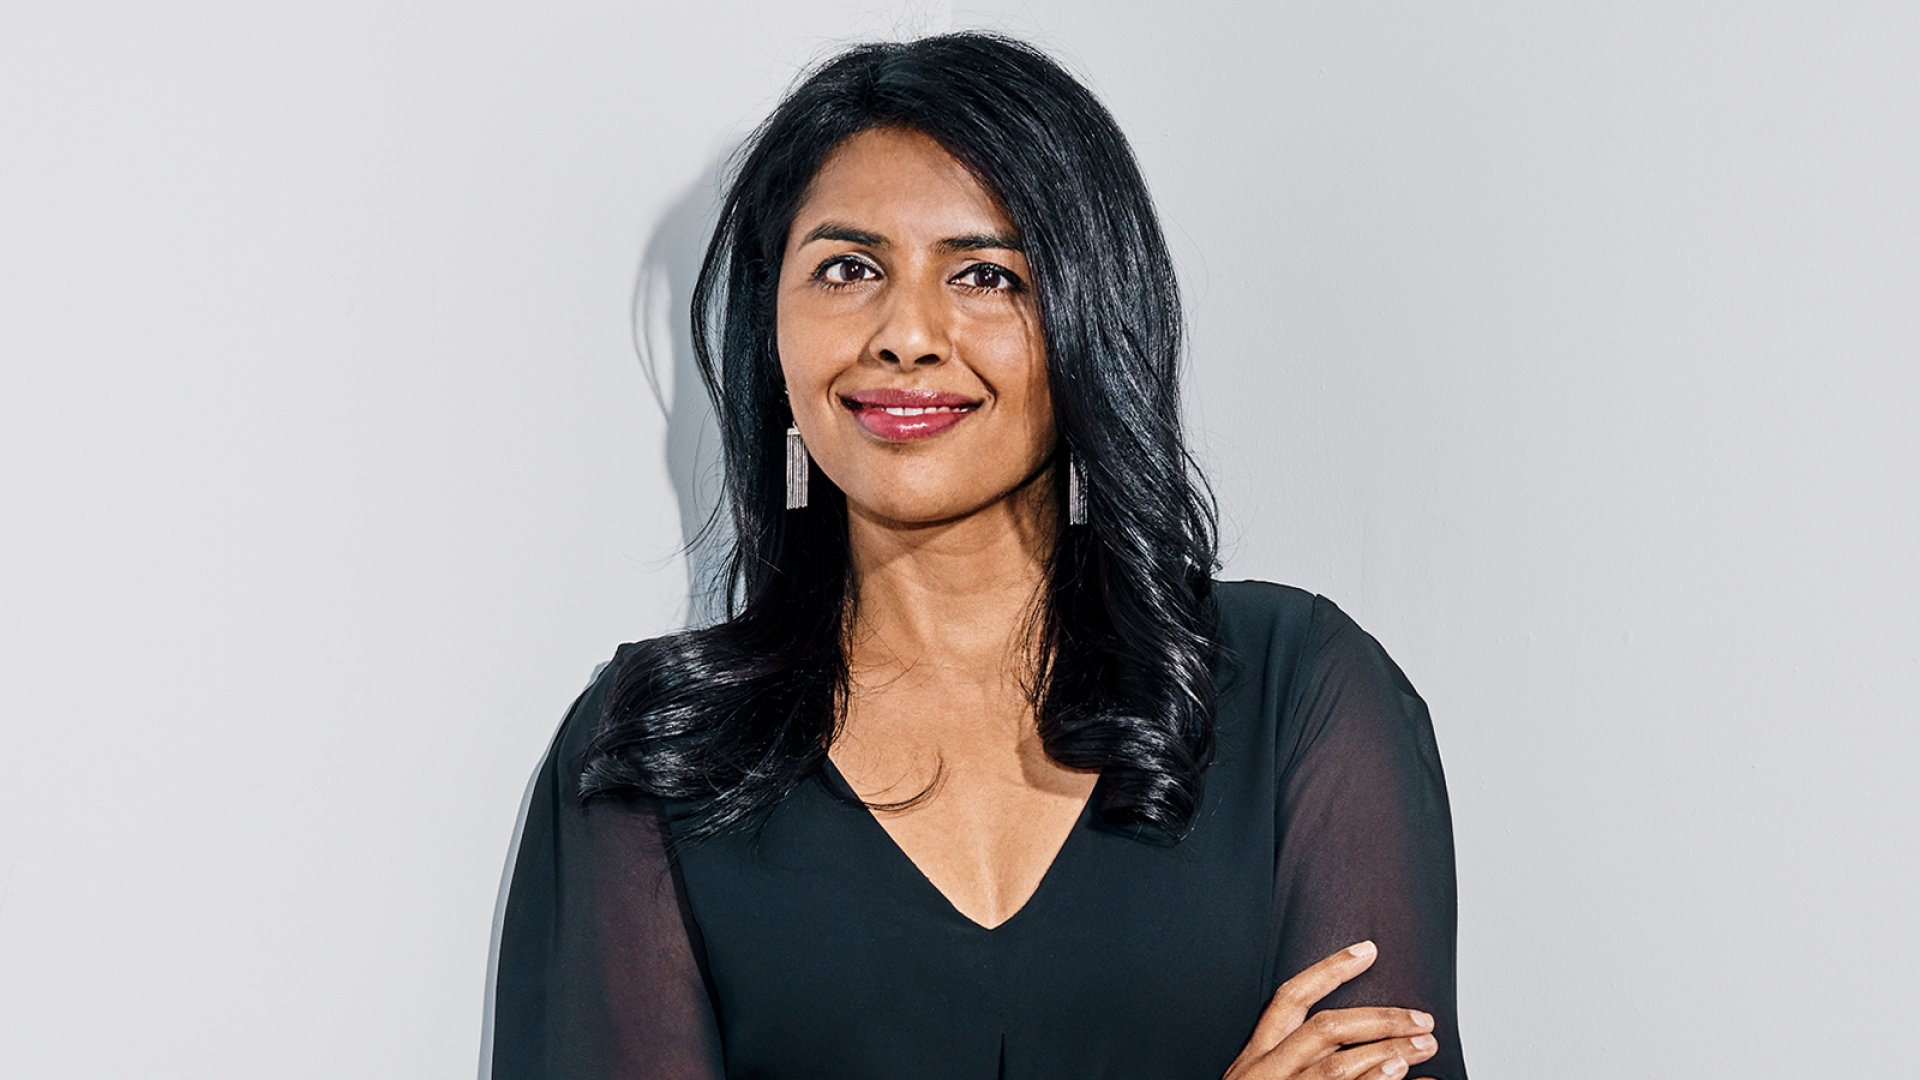 Poorvi Patodia, founder and CEO of Biena.